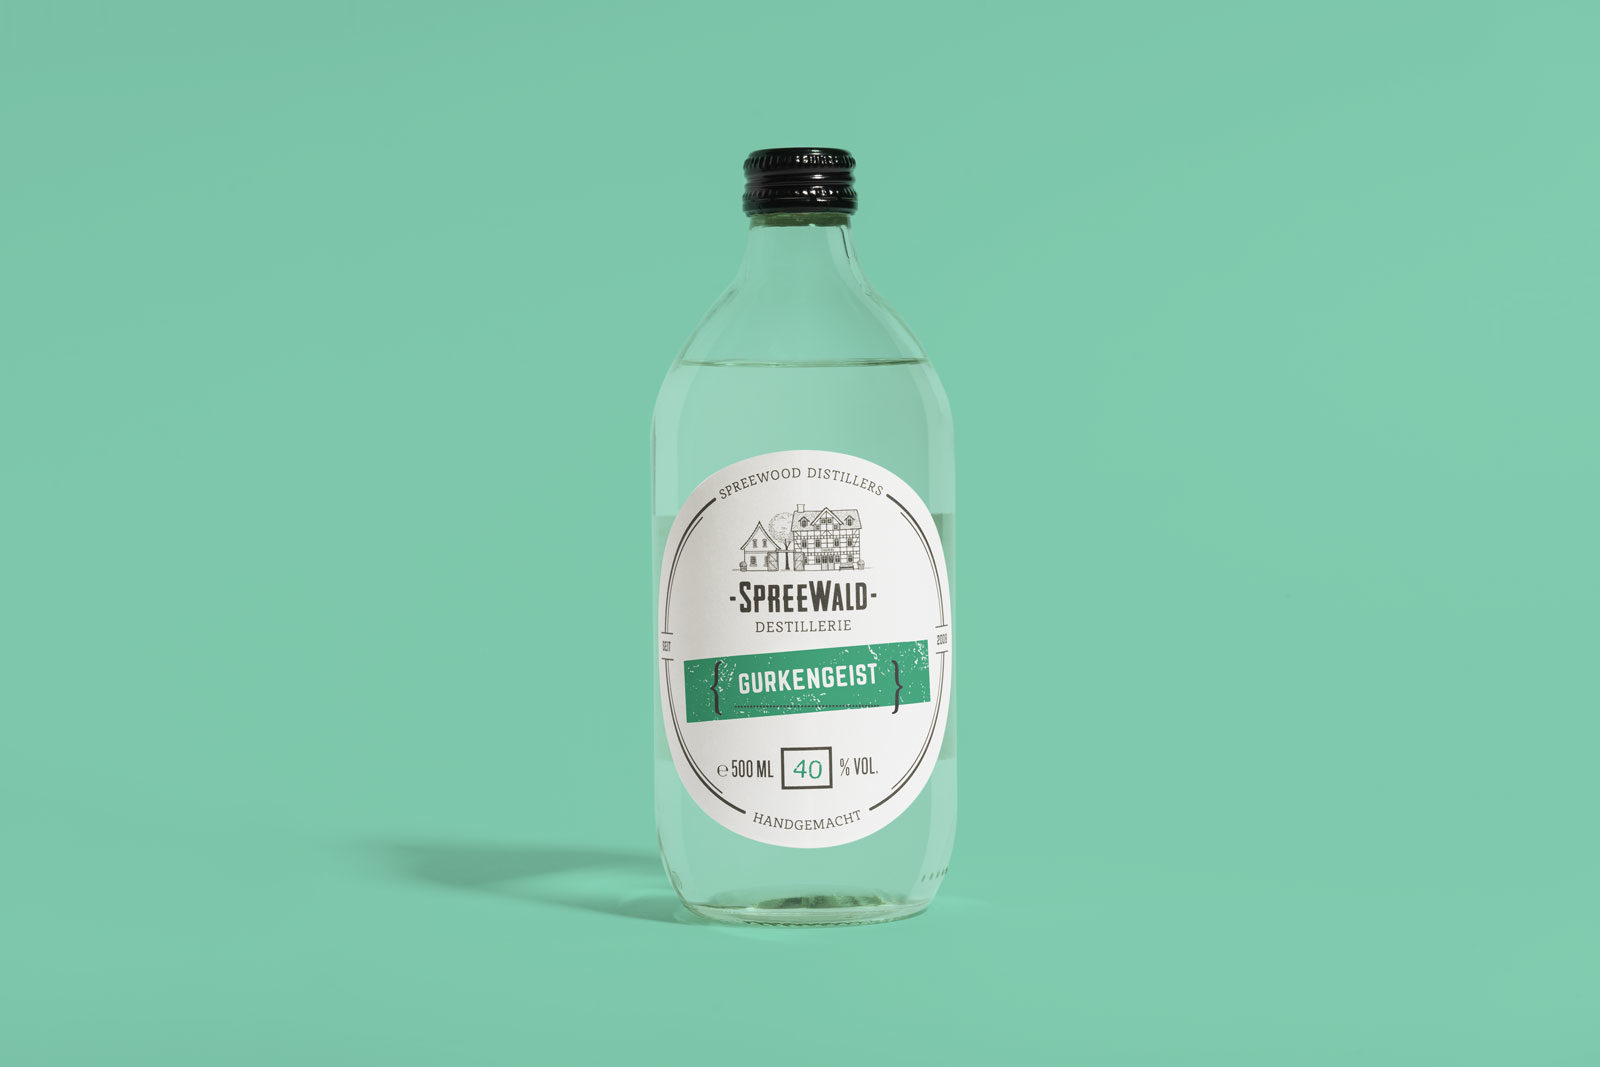 Editienne Grafikdesign - Kommunikationsdesign Berlin- Beverage Packaging Design- Spreewood Distillers